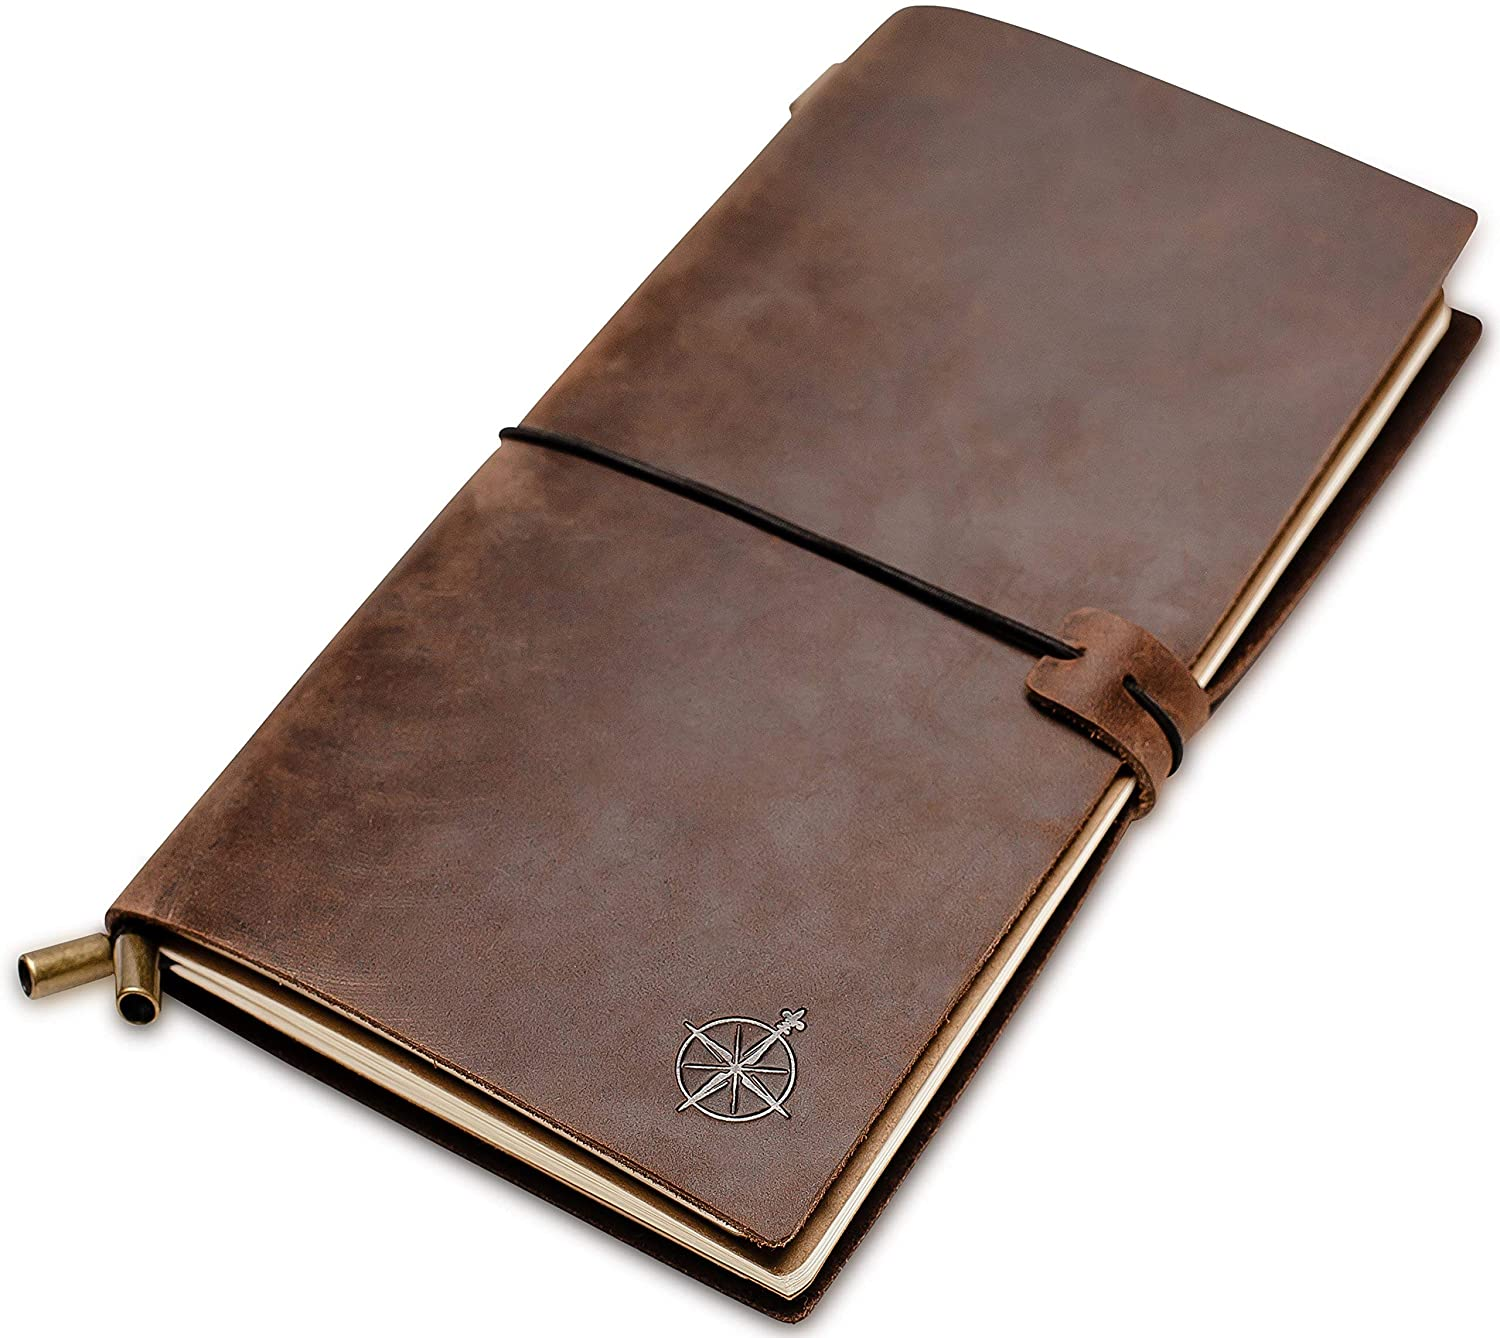 Lined Leather Travel Journal - Wanderings Travelers Notebook, Refillable - Perfect for Writing, Poetry, To Do Lists, Travelers, a Diary. Standard Size Lined Inserts - 8.5